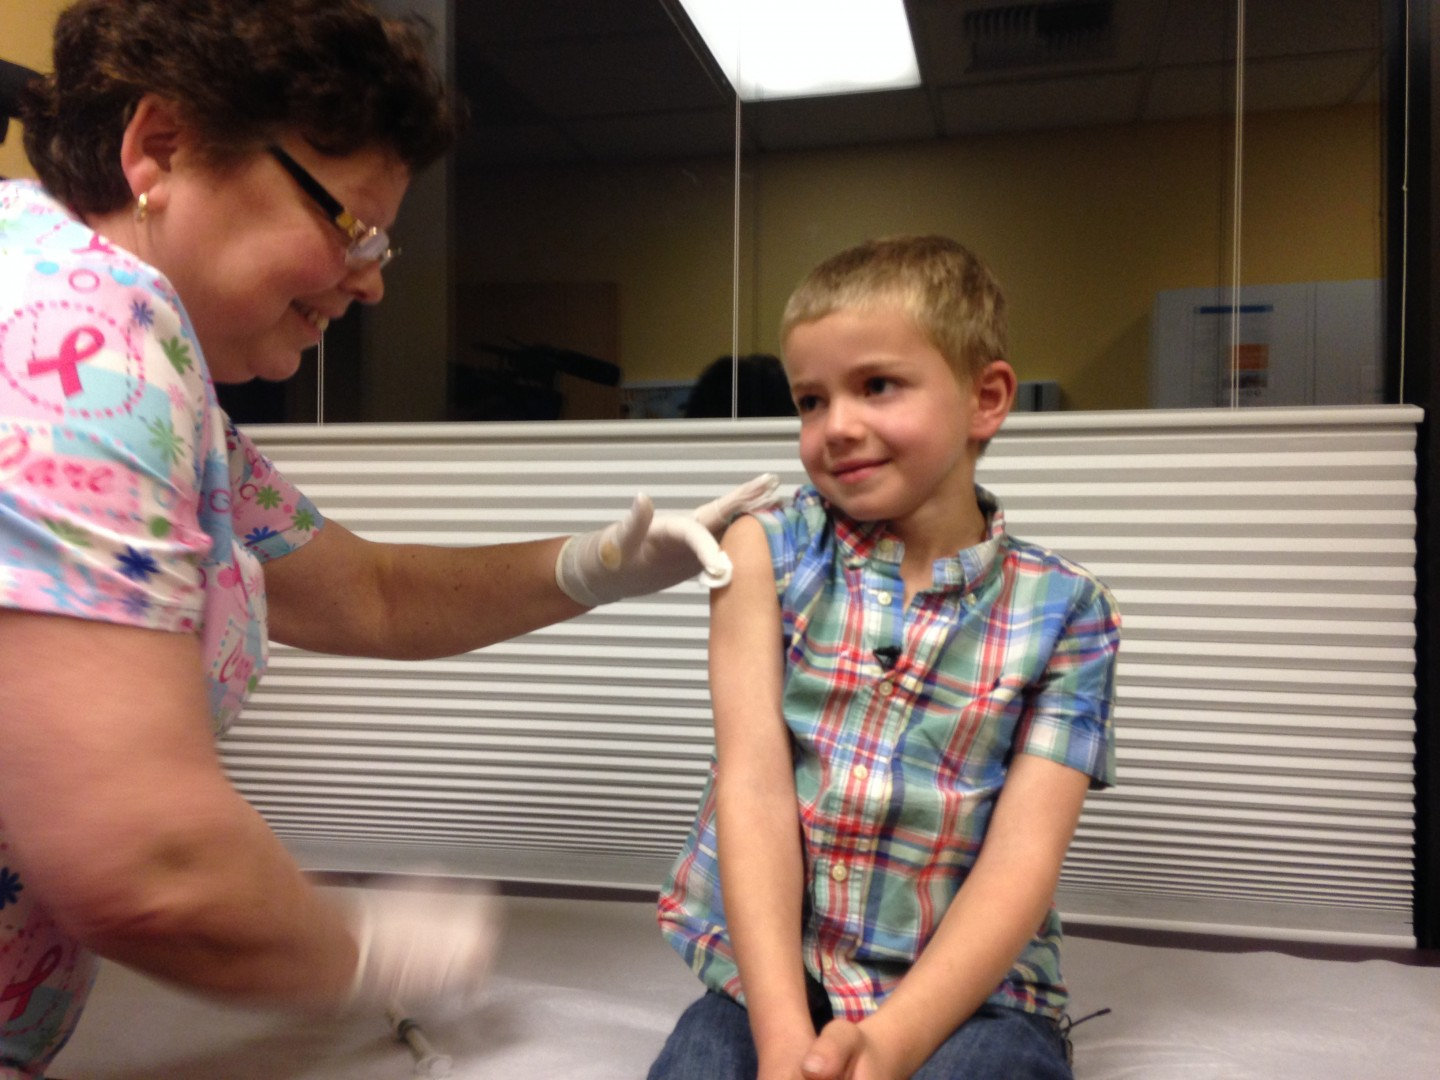 Parents Relieved as Son Gets First Post-Leukemia Vaccines ...